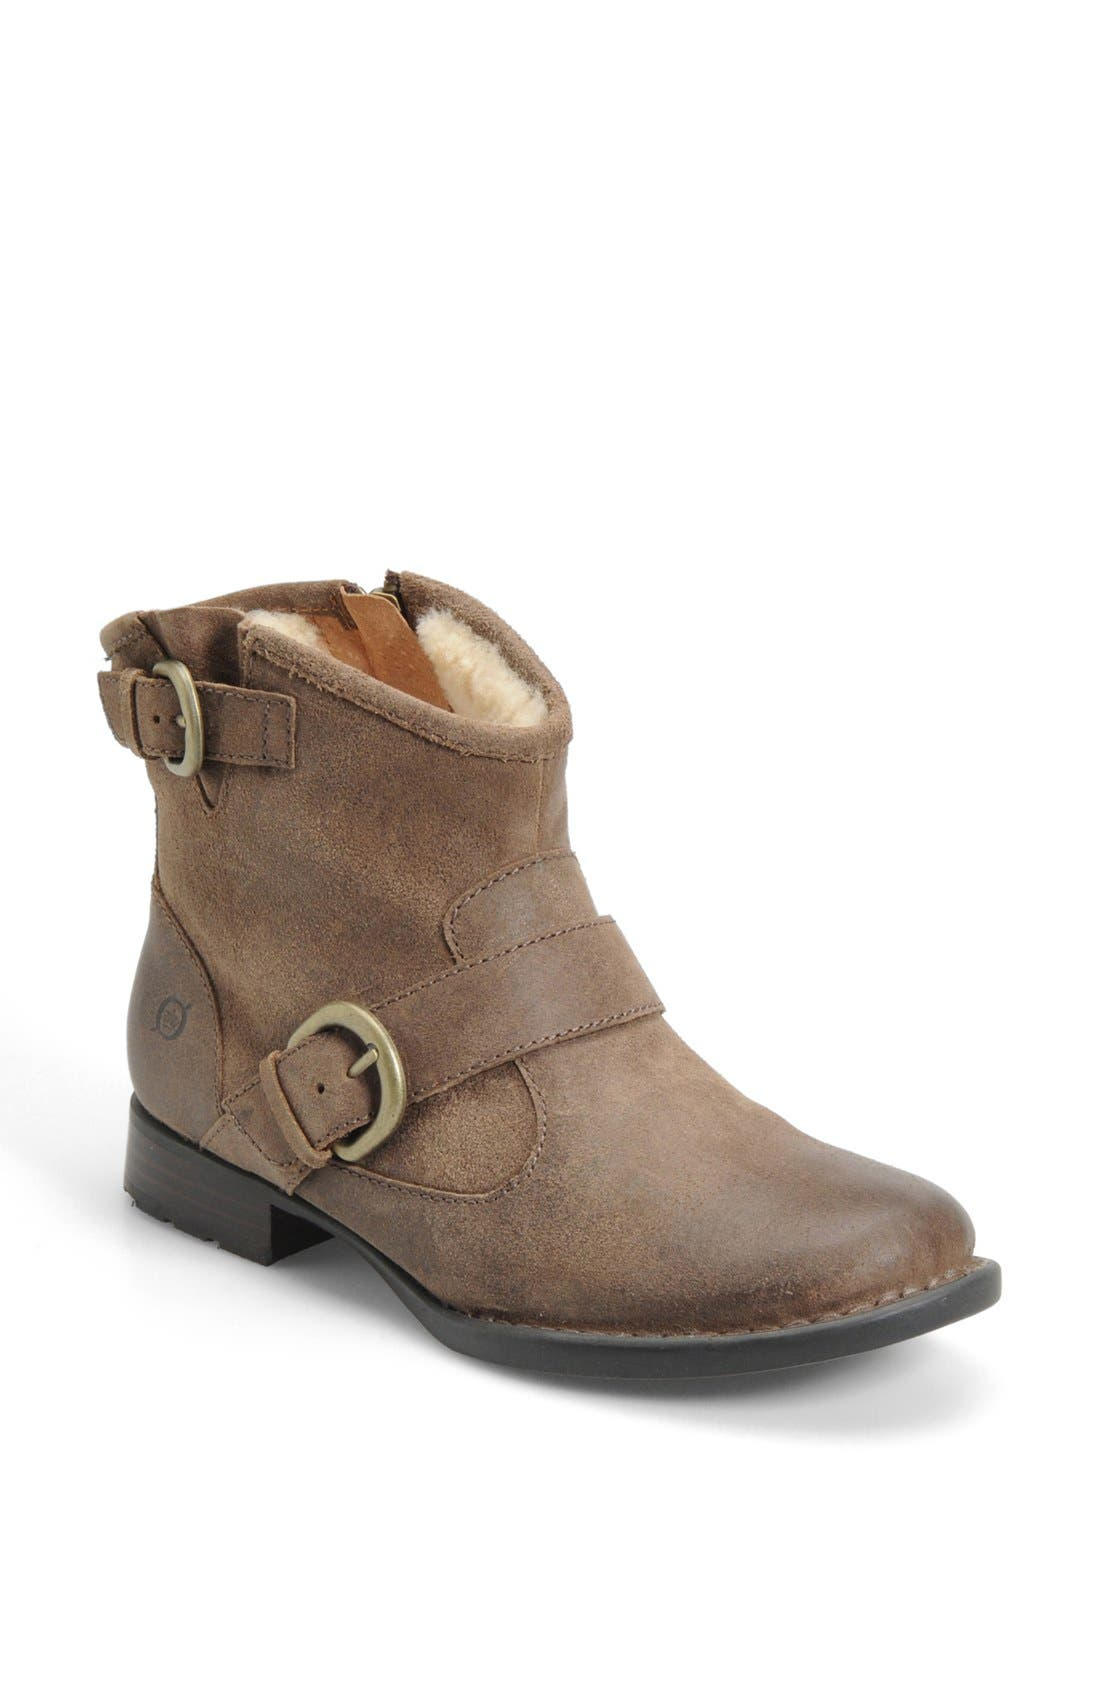 Alternate Image 1 Selected - Børn 'Shea' Shearling Lined Bootie